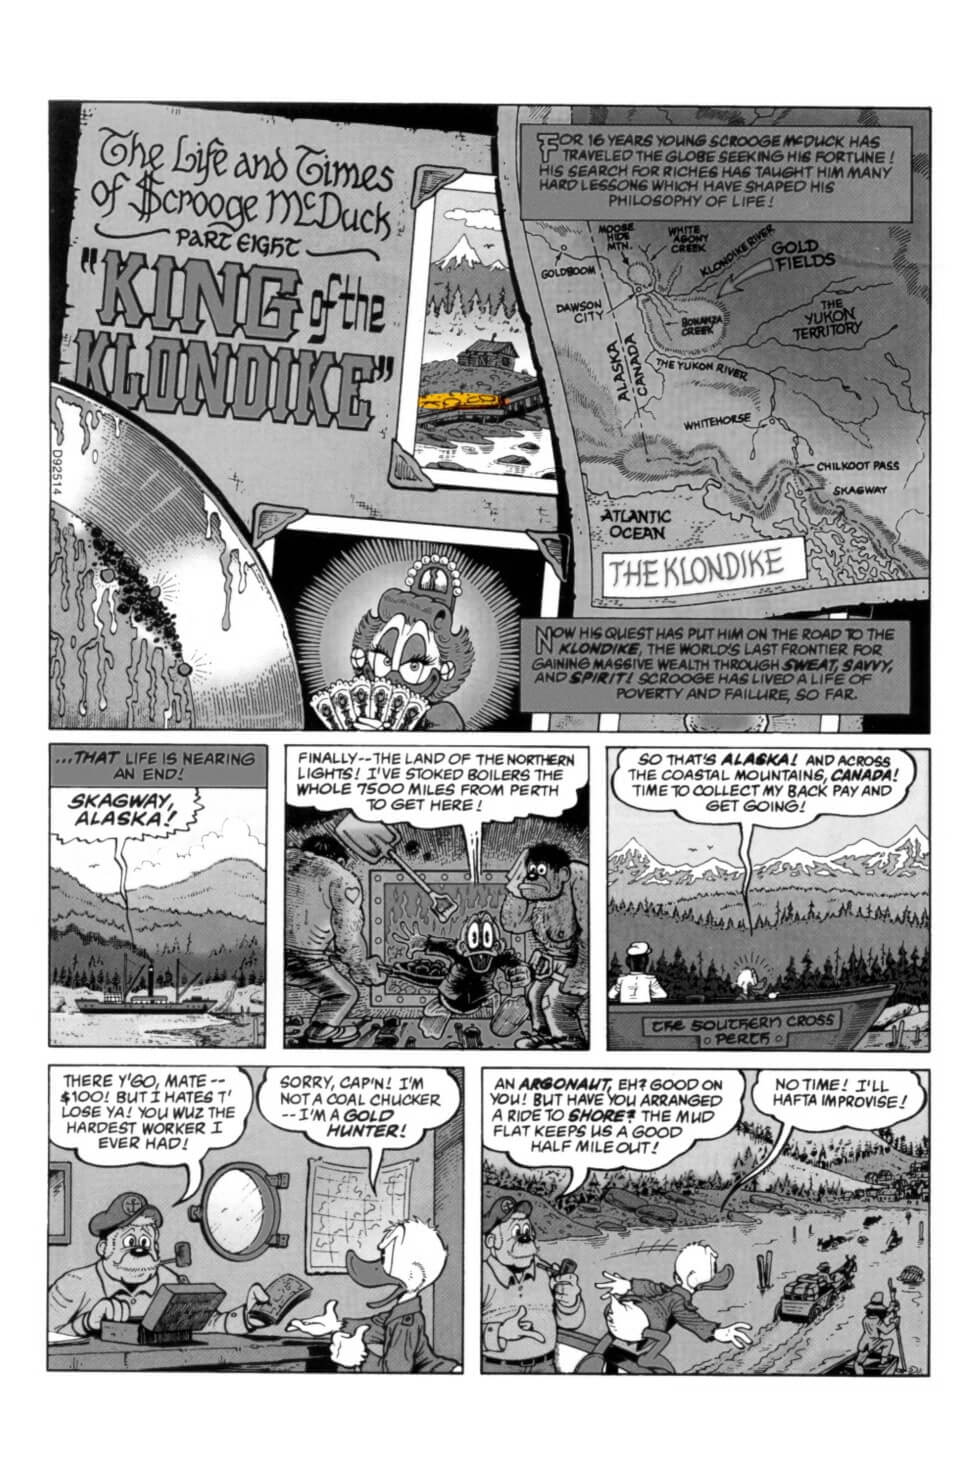 D.U.C.K in Chapter 08 - King of the Klondike first page